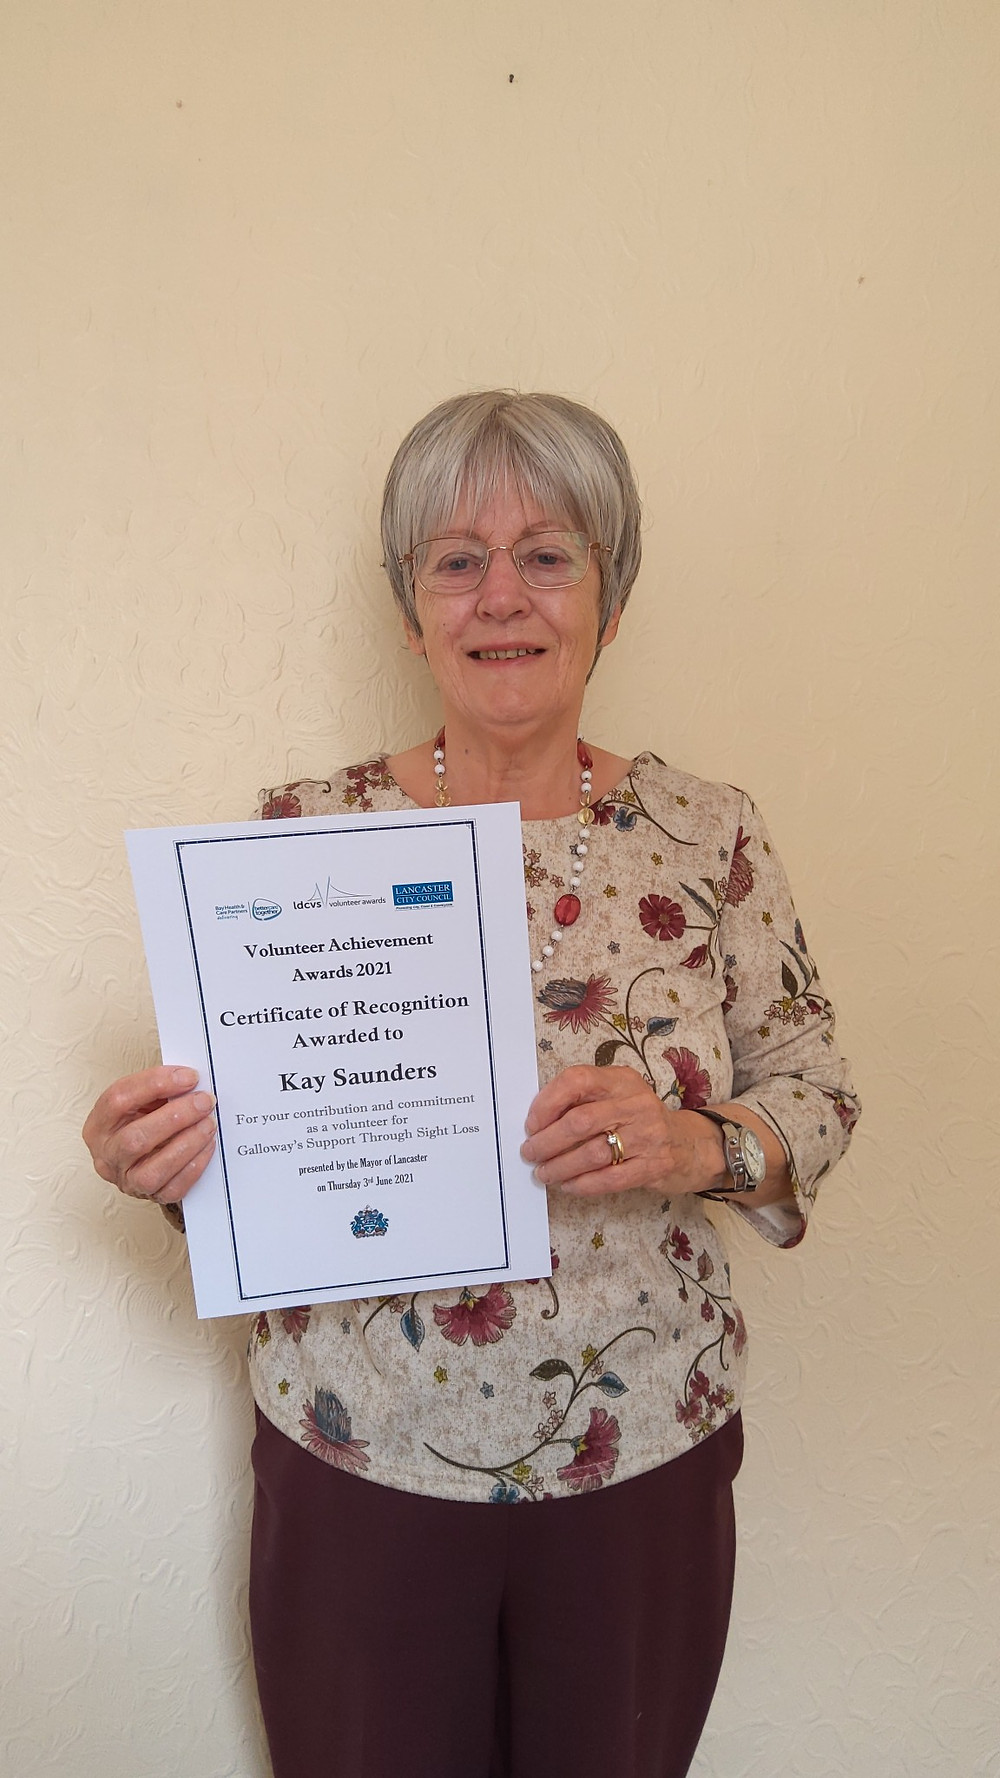 Kay is stood against a white wall holding her certificate